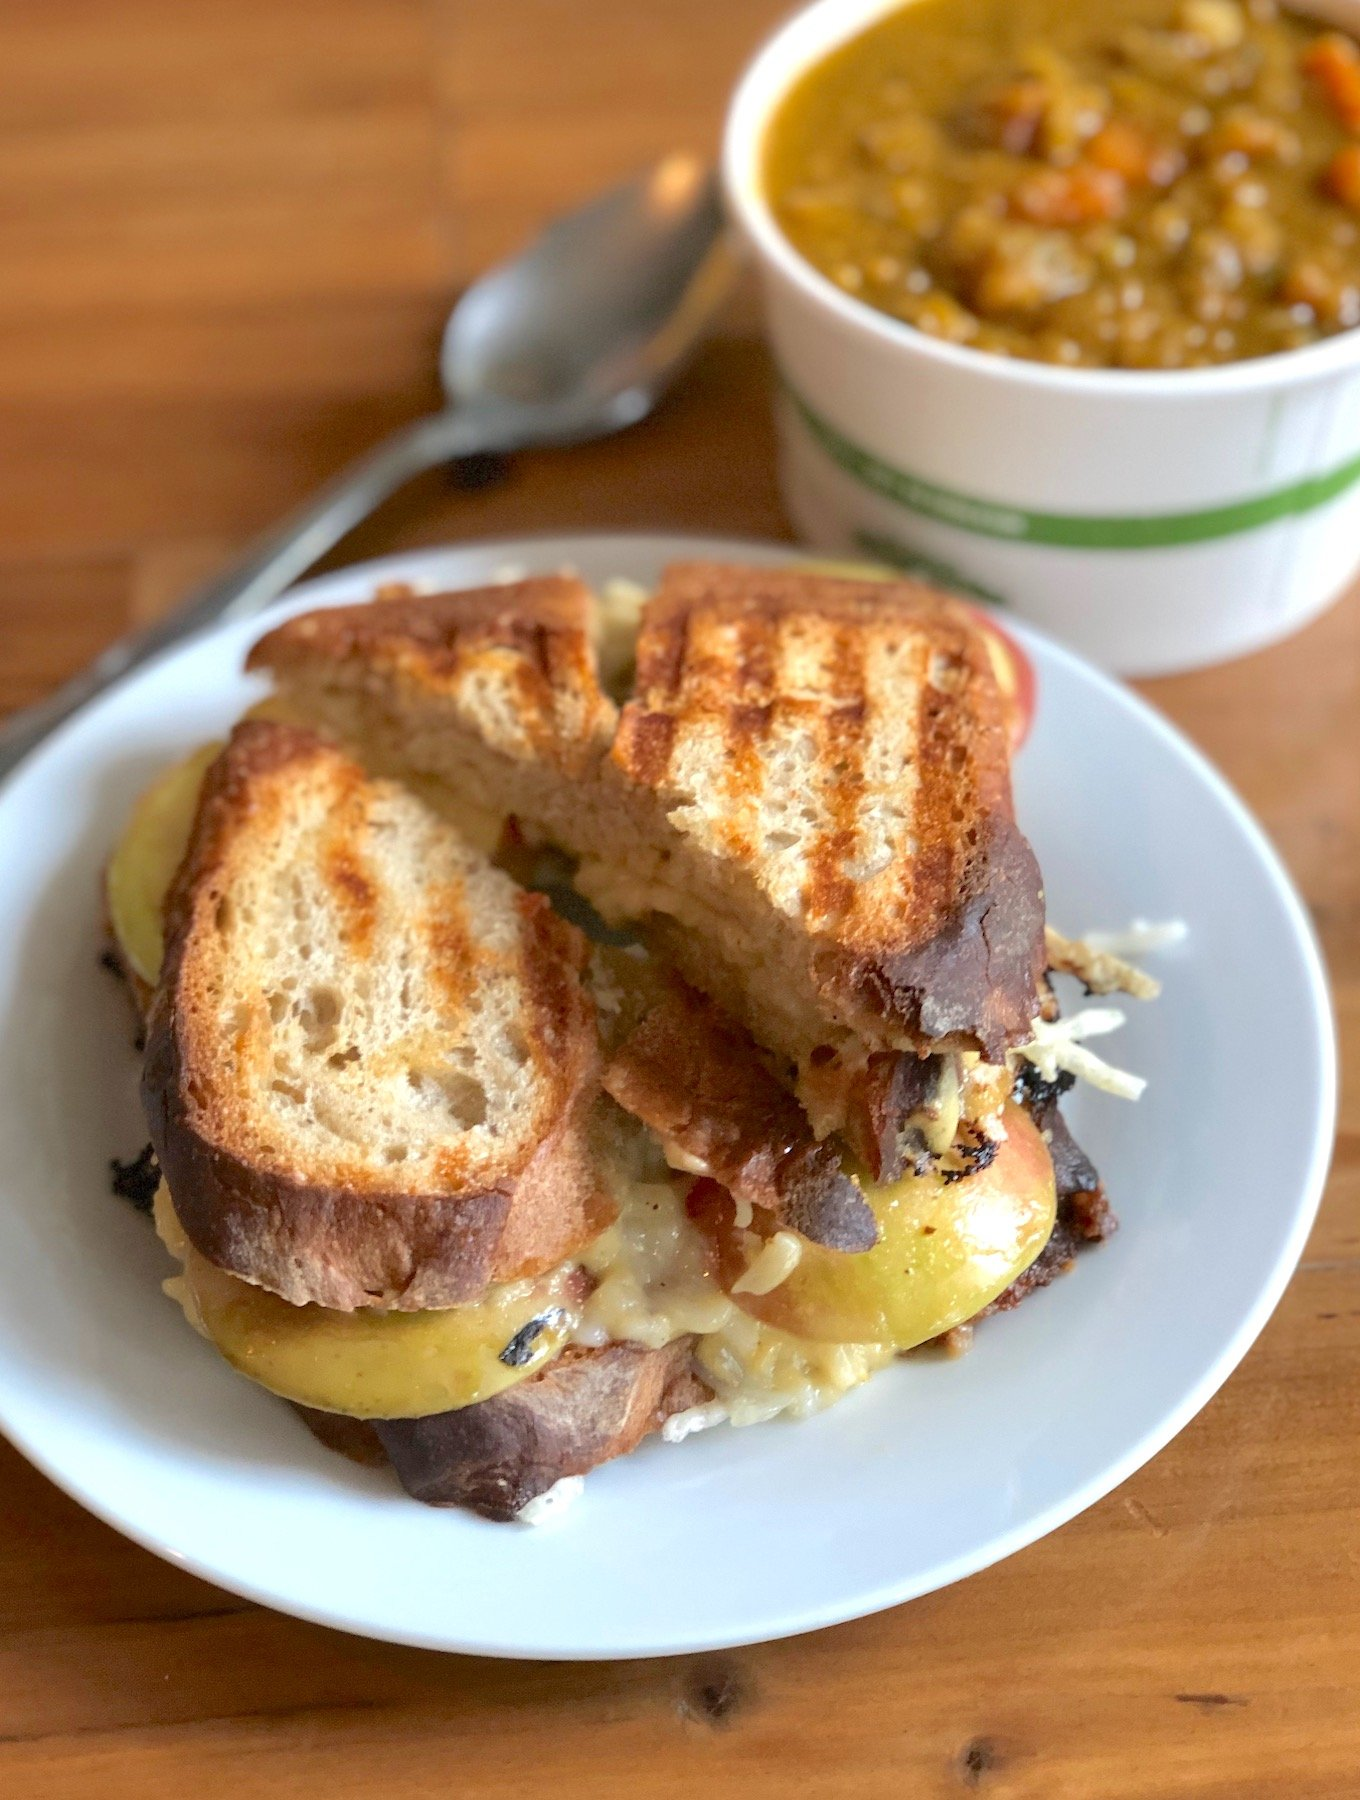 Lentil Soup and vegan grilled cheese sandwich at consciousfork cafe